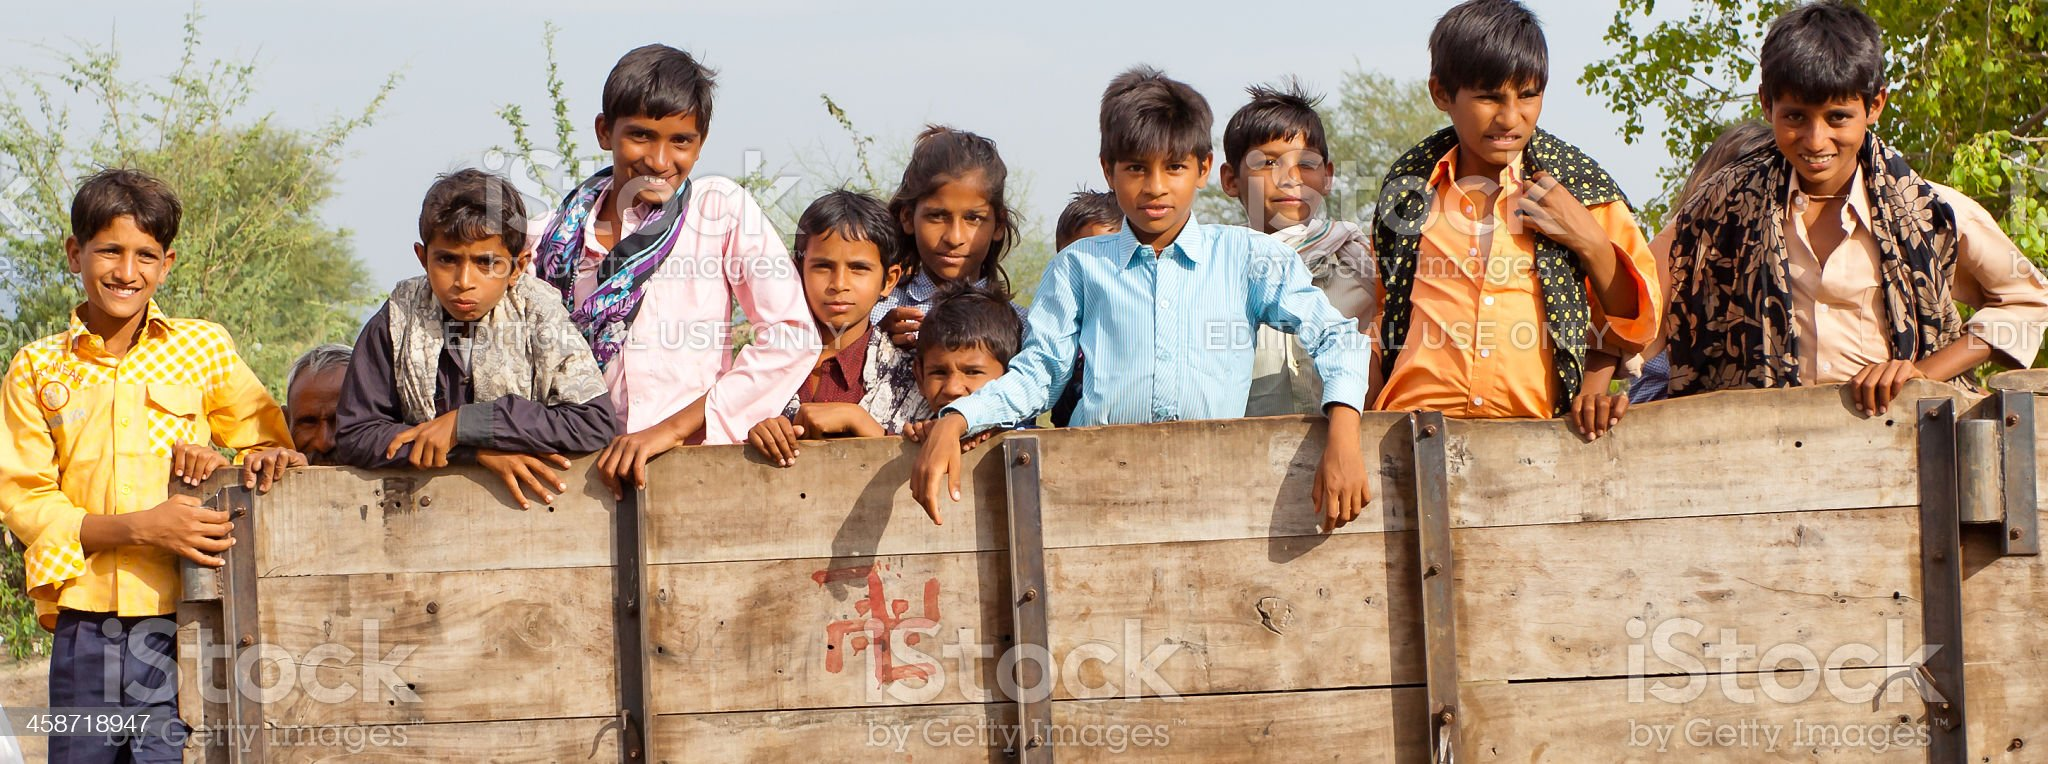 Indian Rural Children royalty-free stock photo